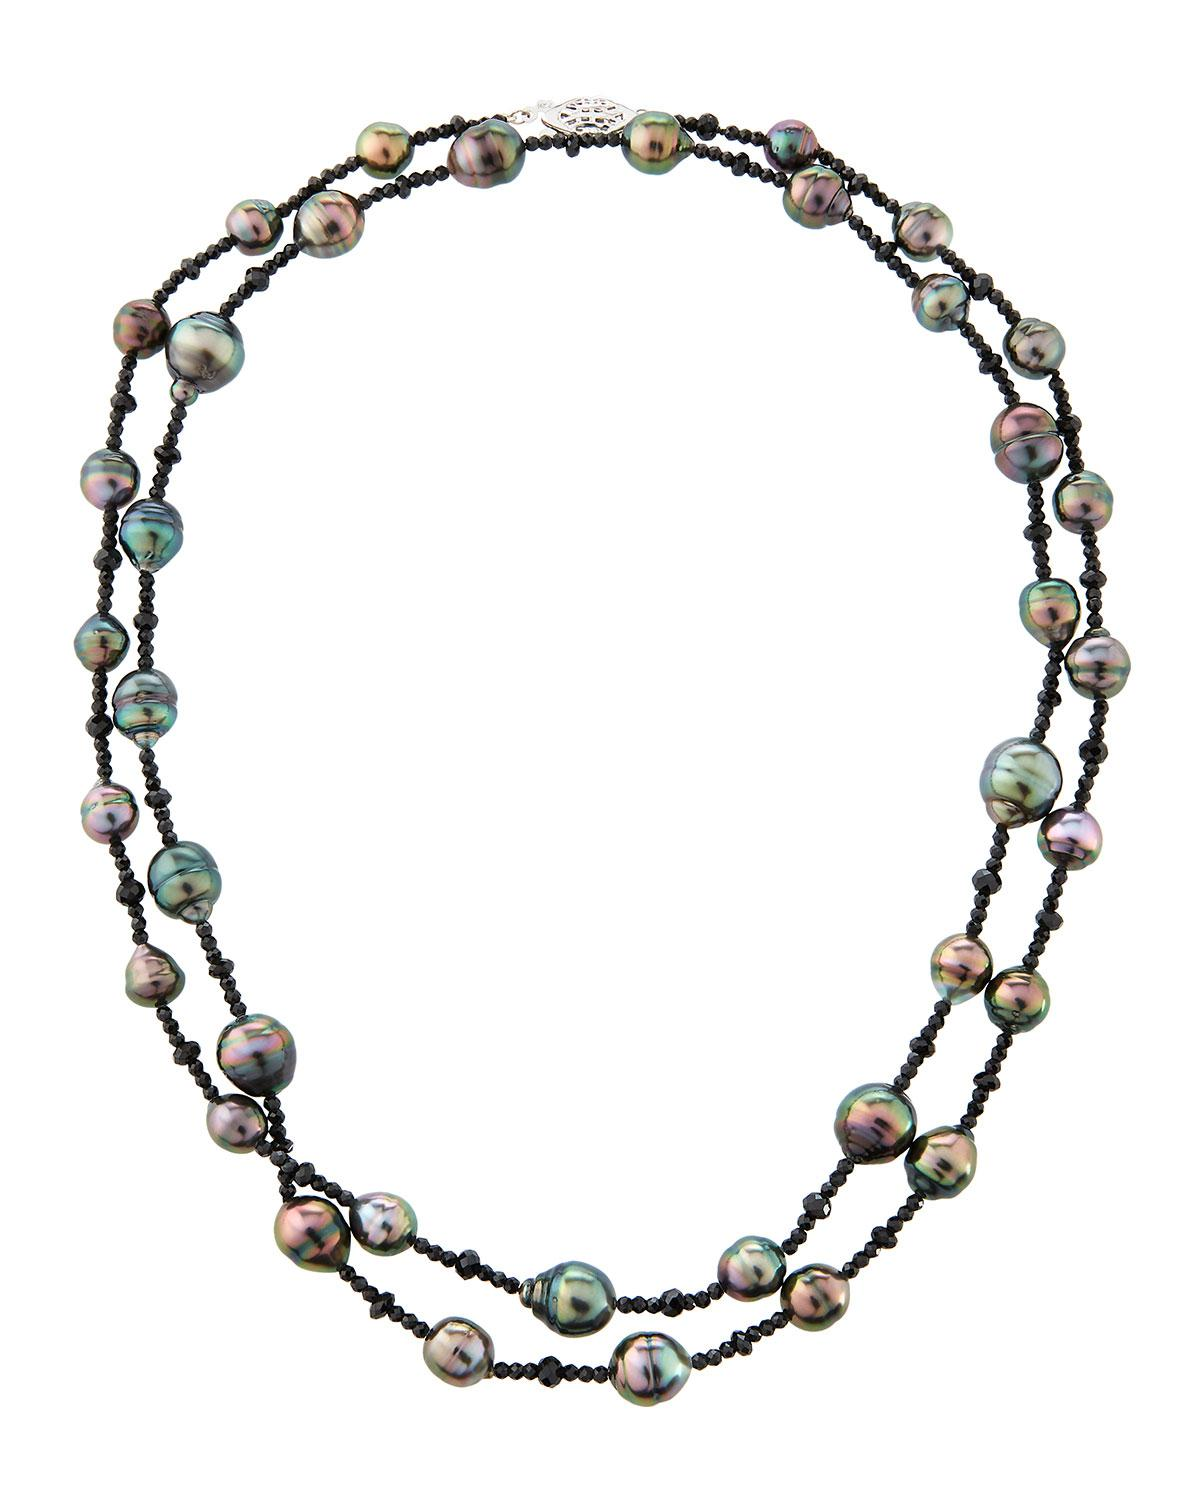 Belpearl 14k Tahitian Pearl & Spinel Necklace M5hz3R